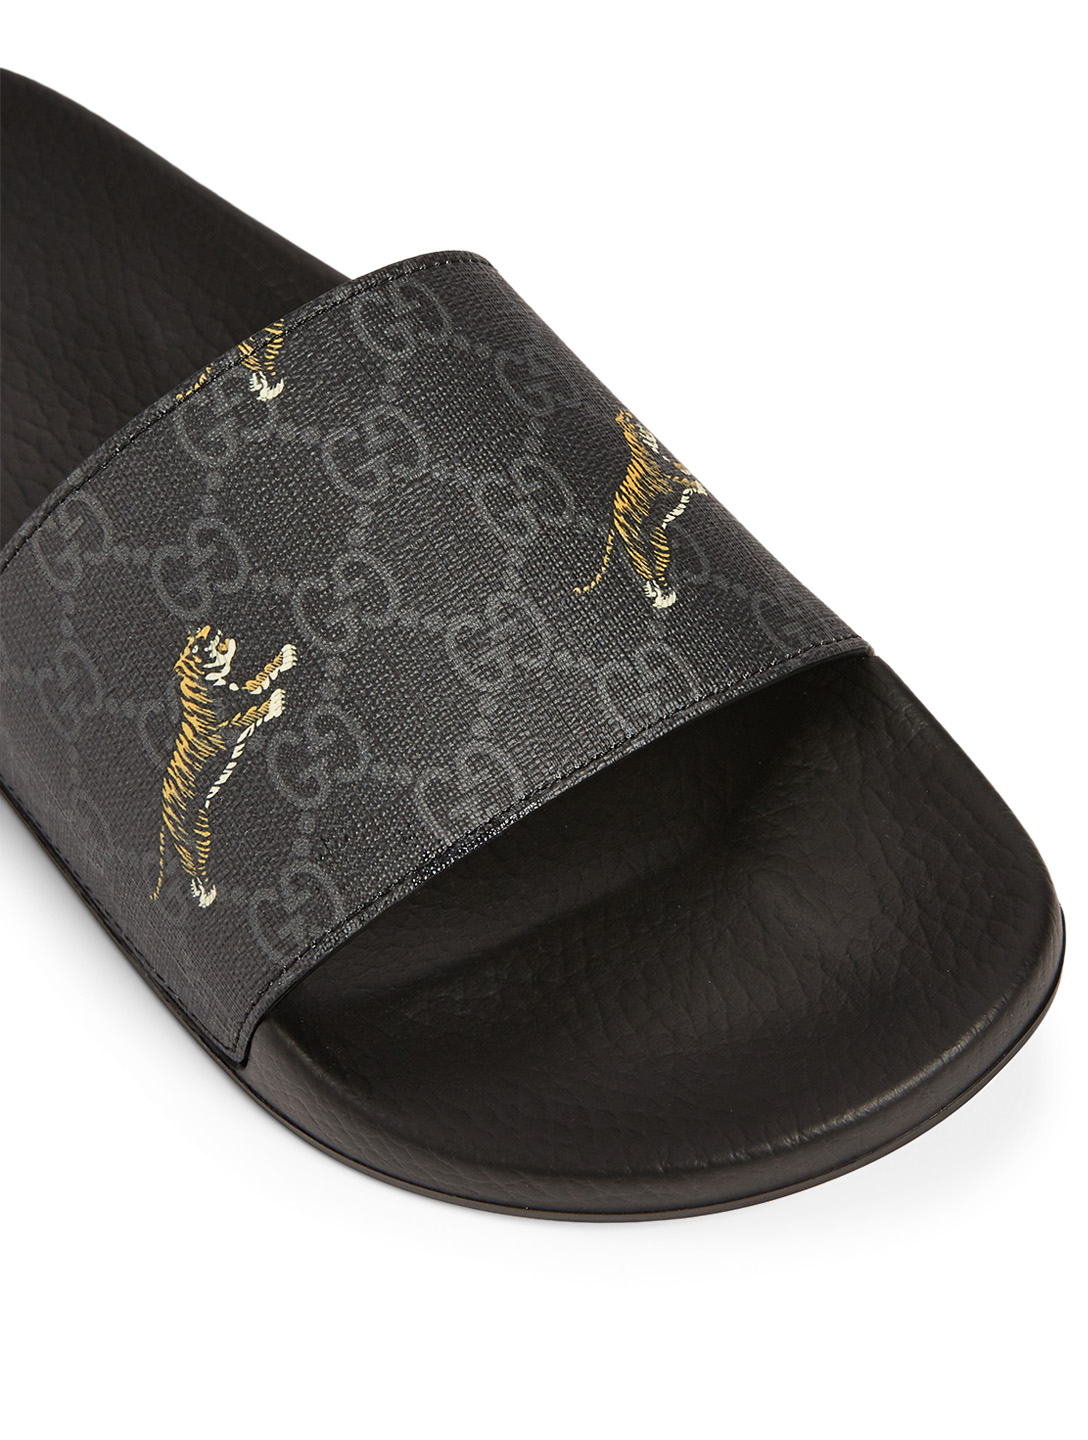 b7cf96417f GUCCI GG Supreme Canvas Slide Sandals In Tiger Print | Holt Renfrew